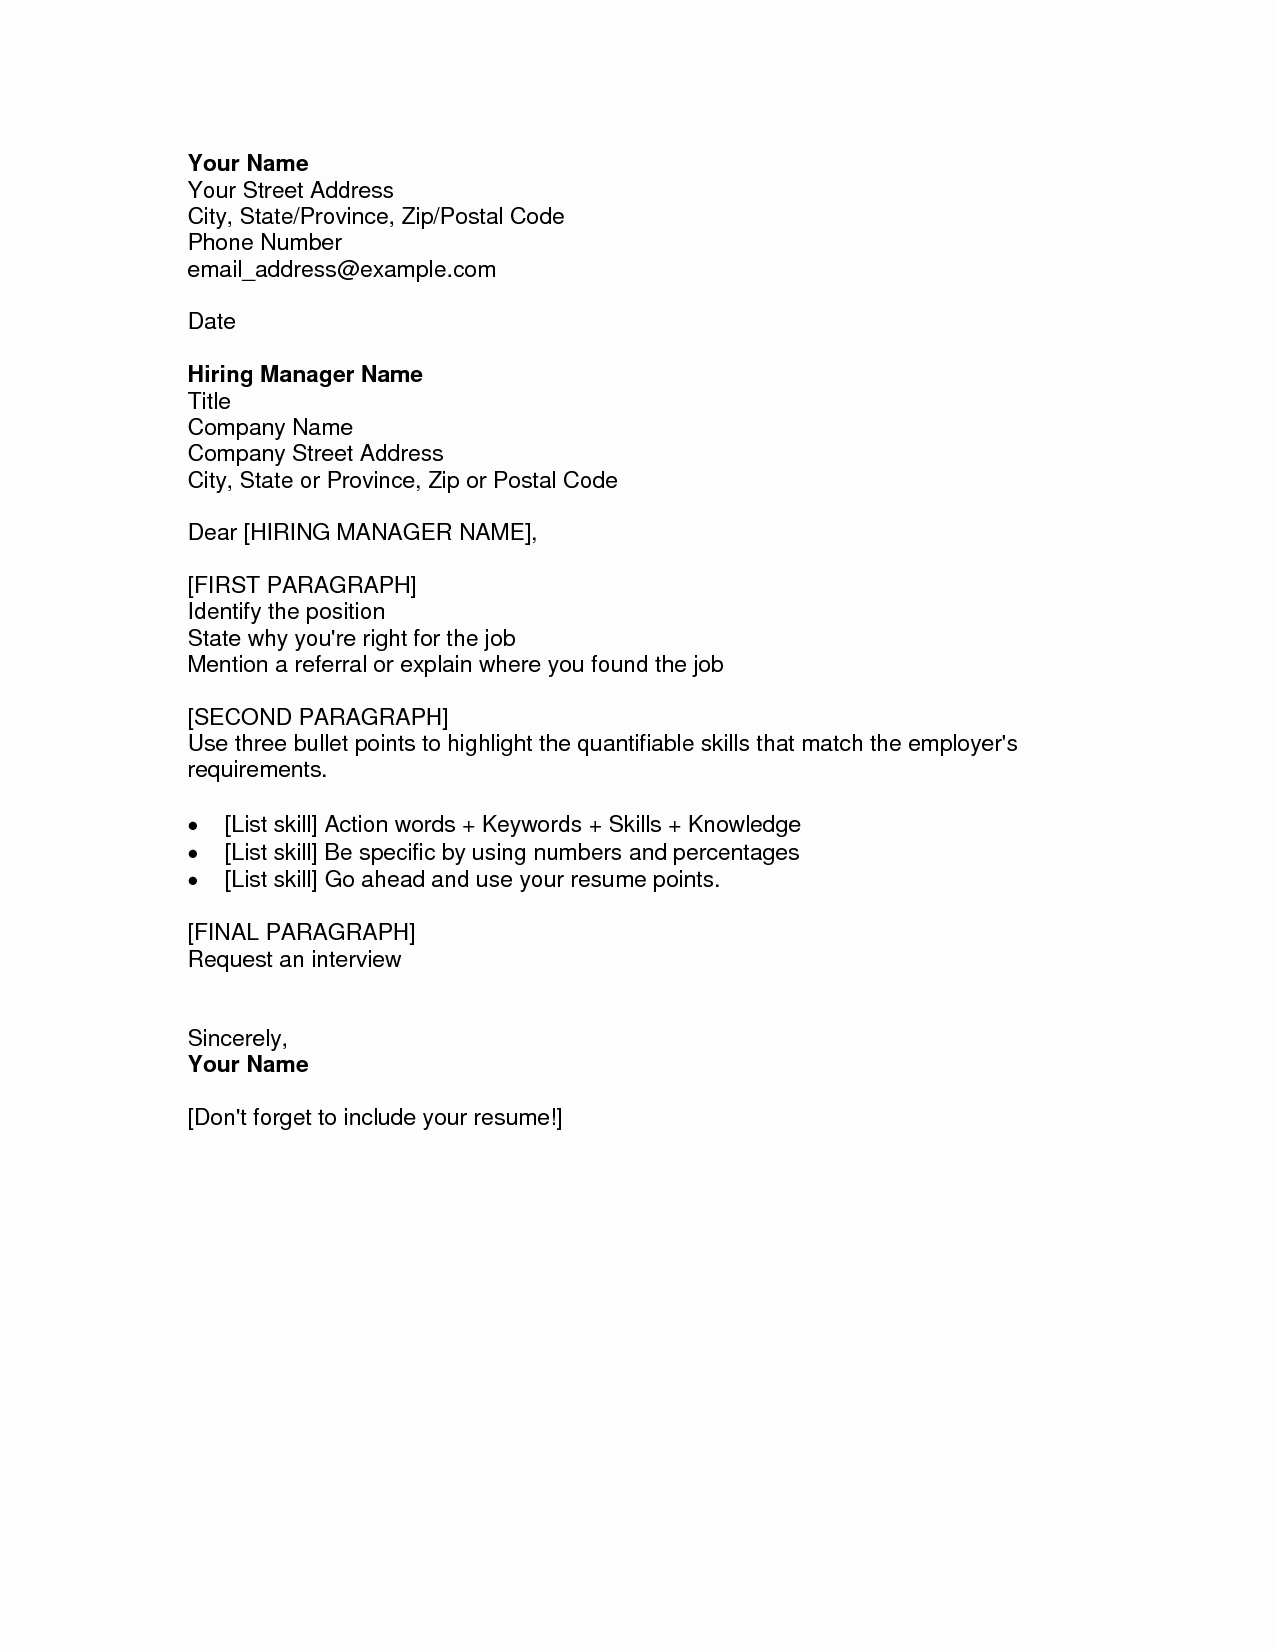 Resume and Cover Letter Template Luxury Resume Cover Letter